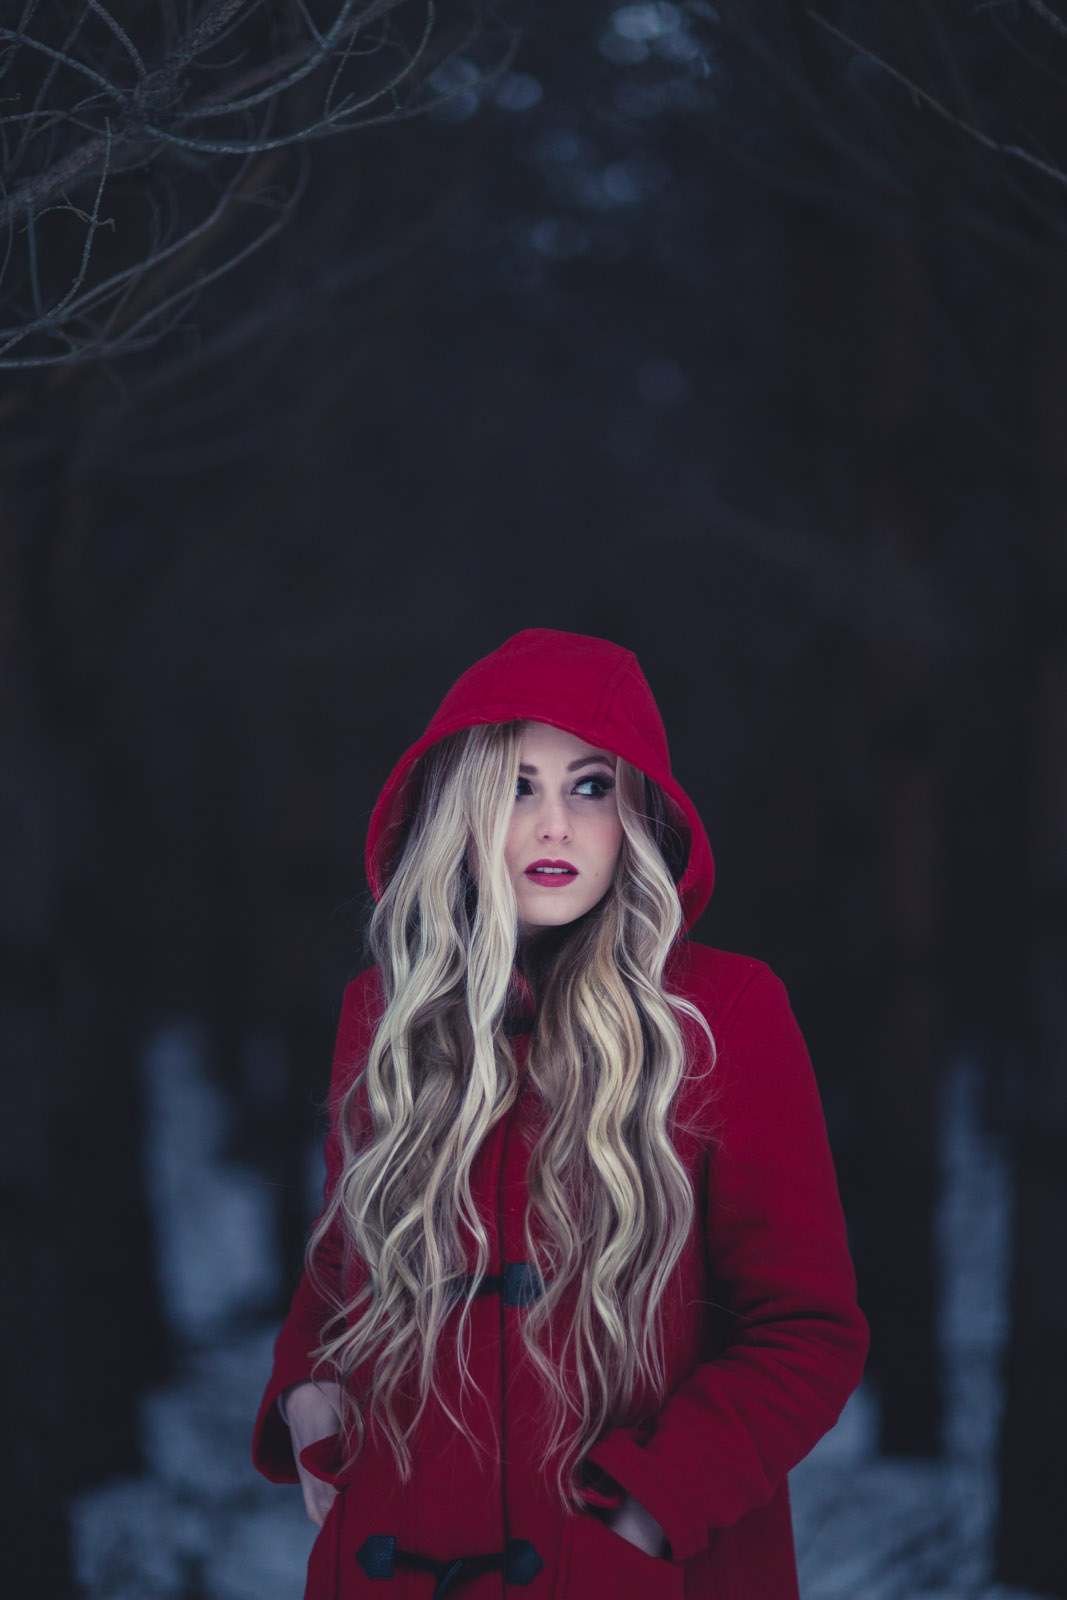 fine art photography, fine art, conceptual photography, konceptuellt foto, Red Riding Hood - Cecilia Kallin from Timoteij - Artist Portrait photographer - Porträttfotograf